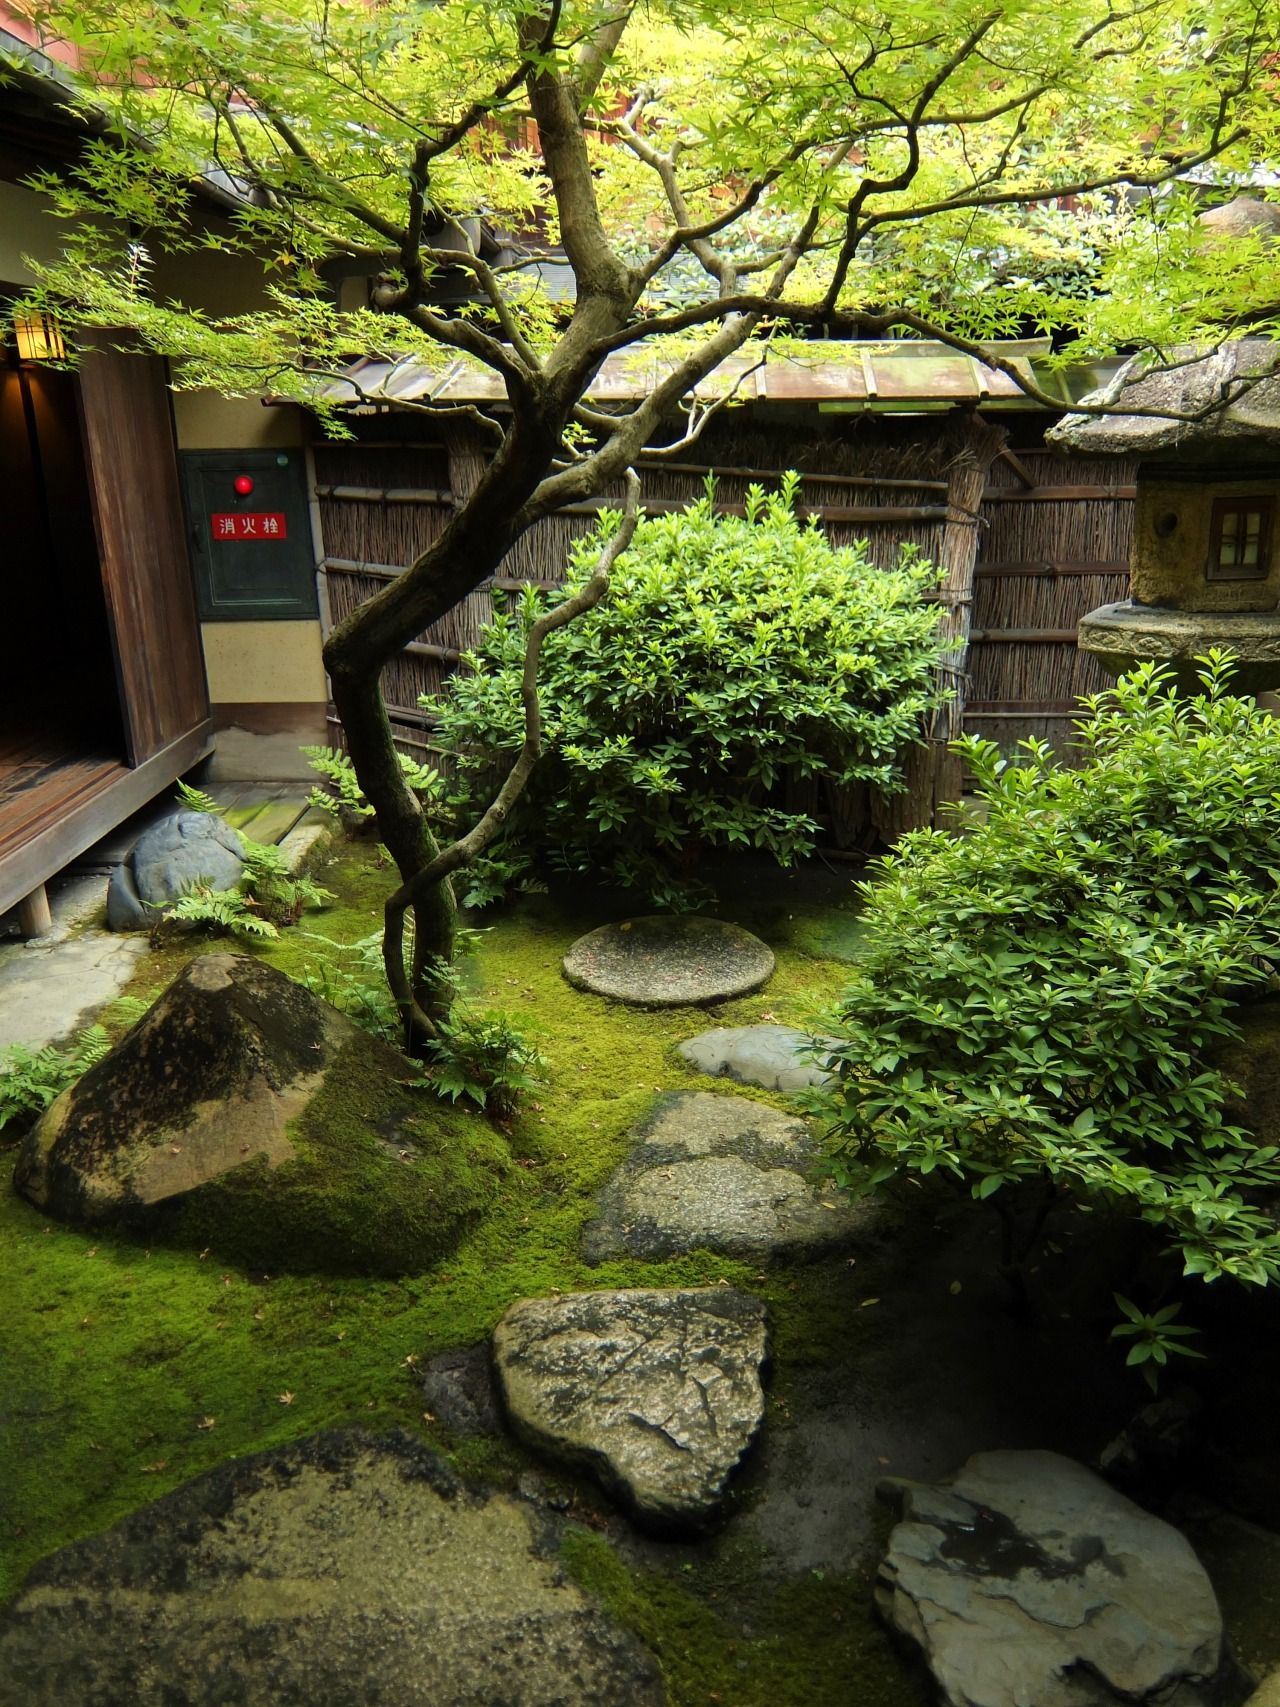 Japanese garden in sumiya shimabara kyoto japan 2014 - Small japanese garden ideas ...